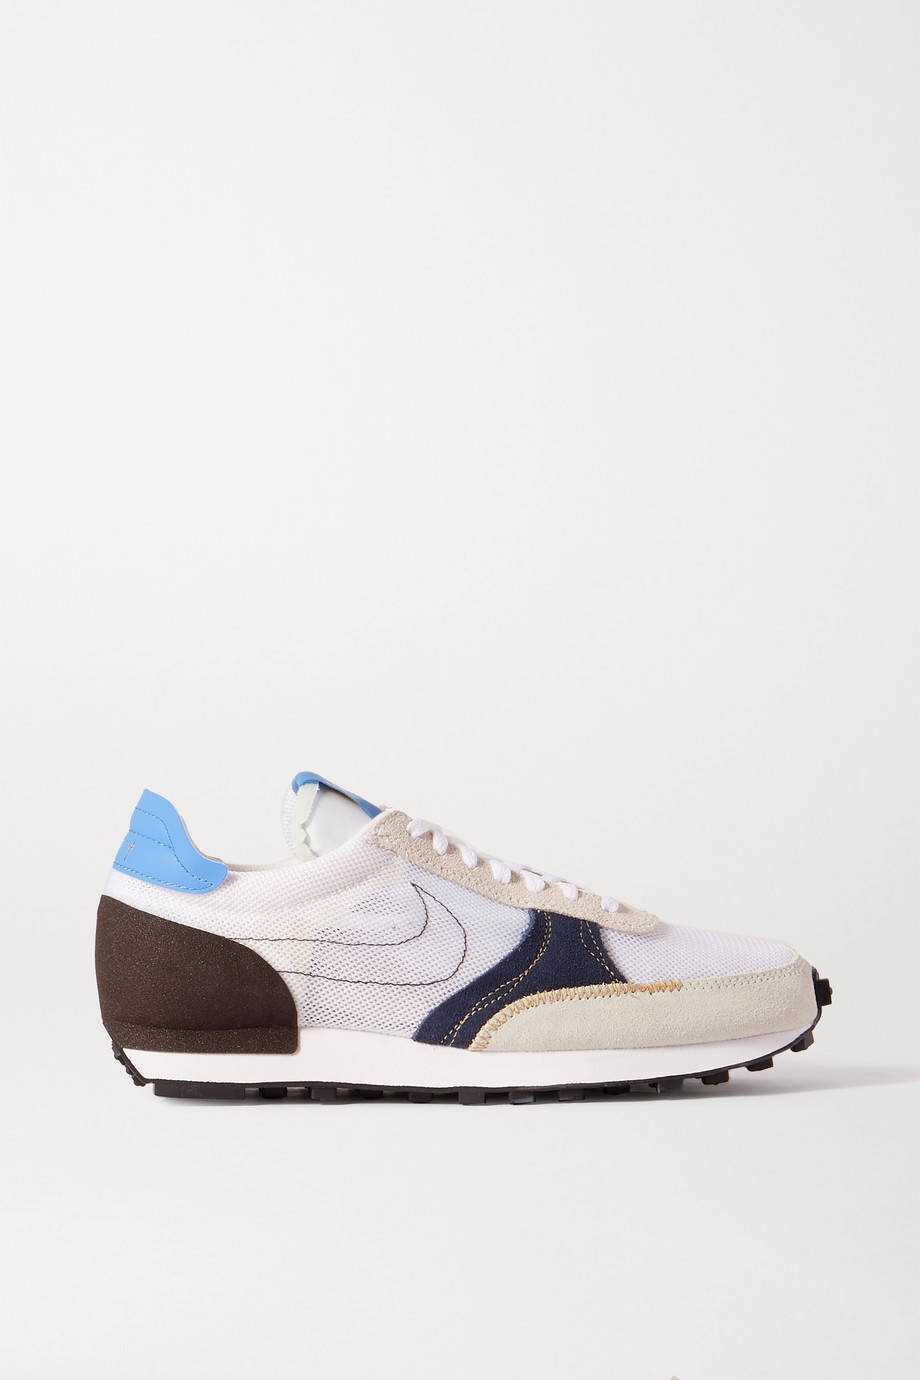 Nike Daybreak Type N.354 mesh, faux suede and leather sneakers